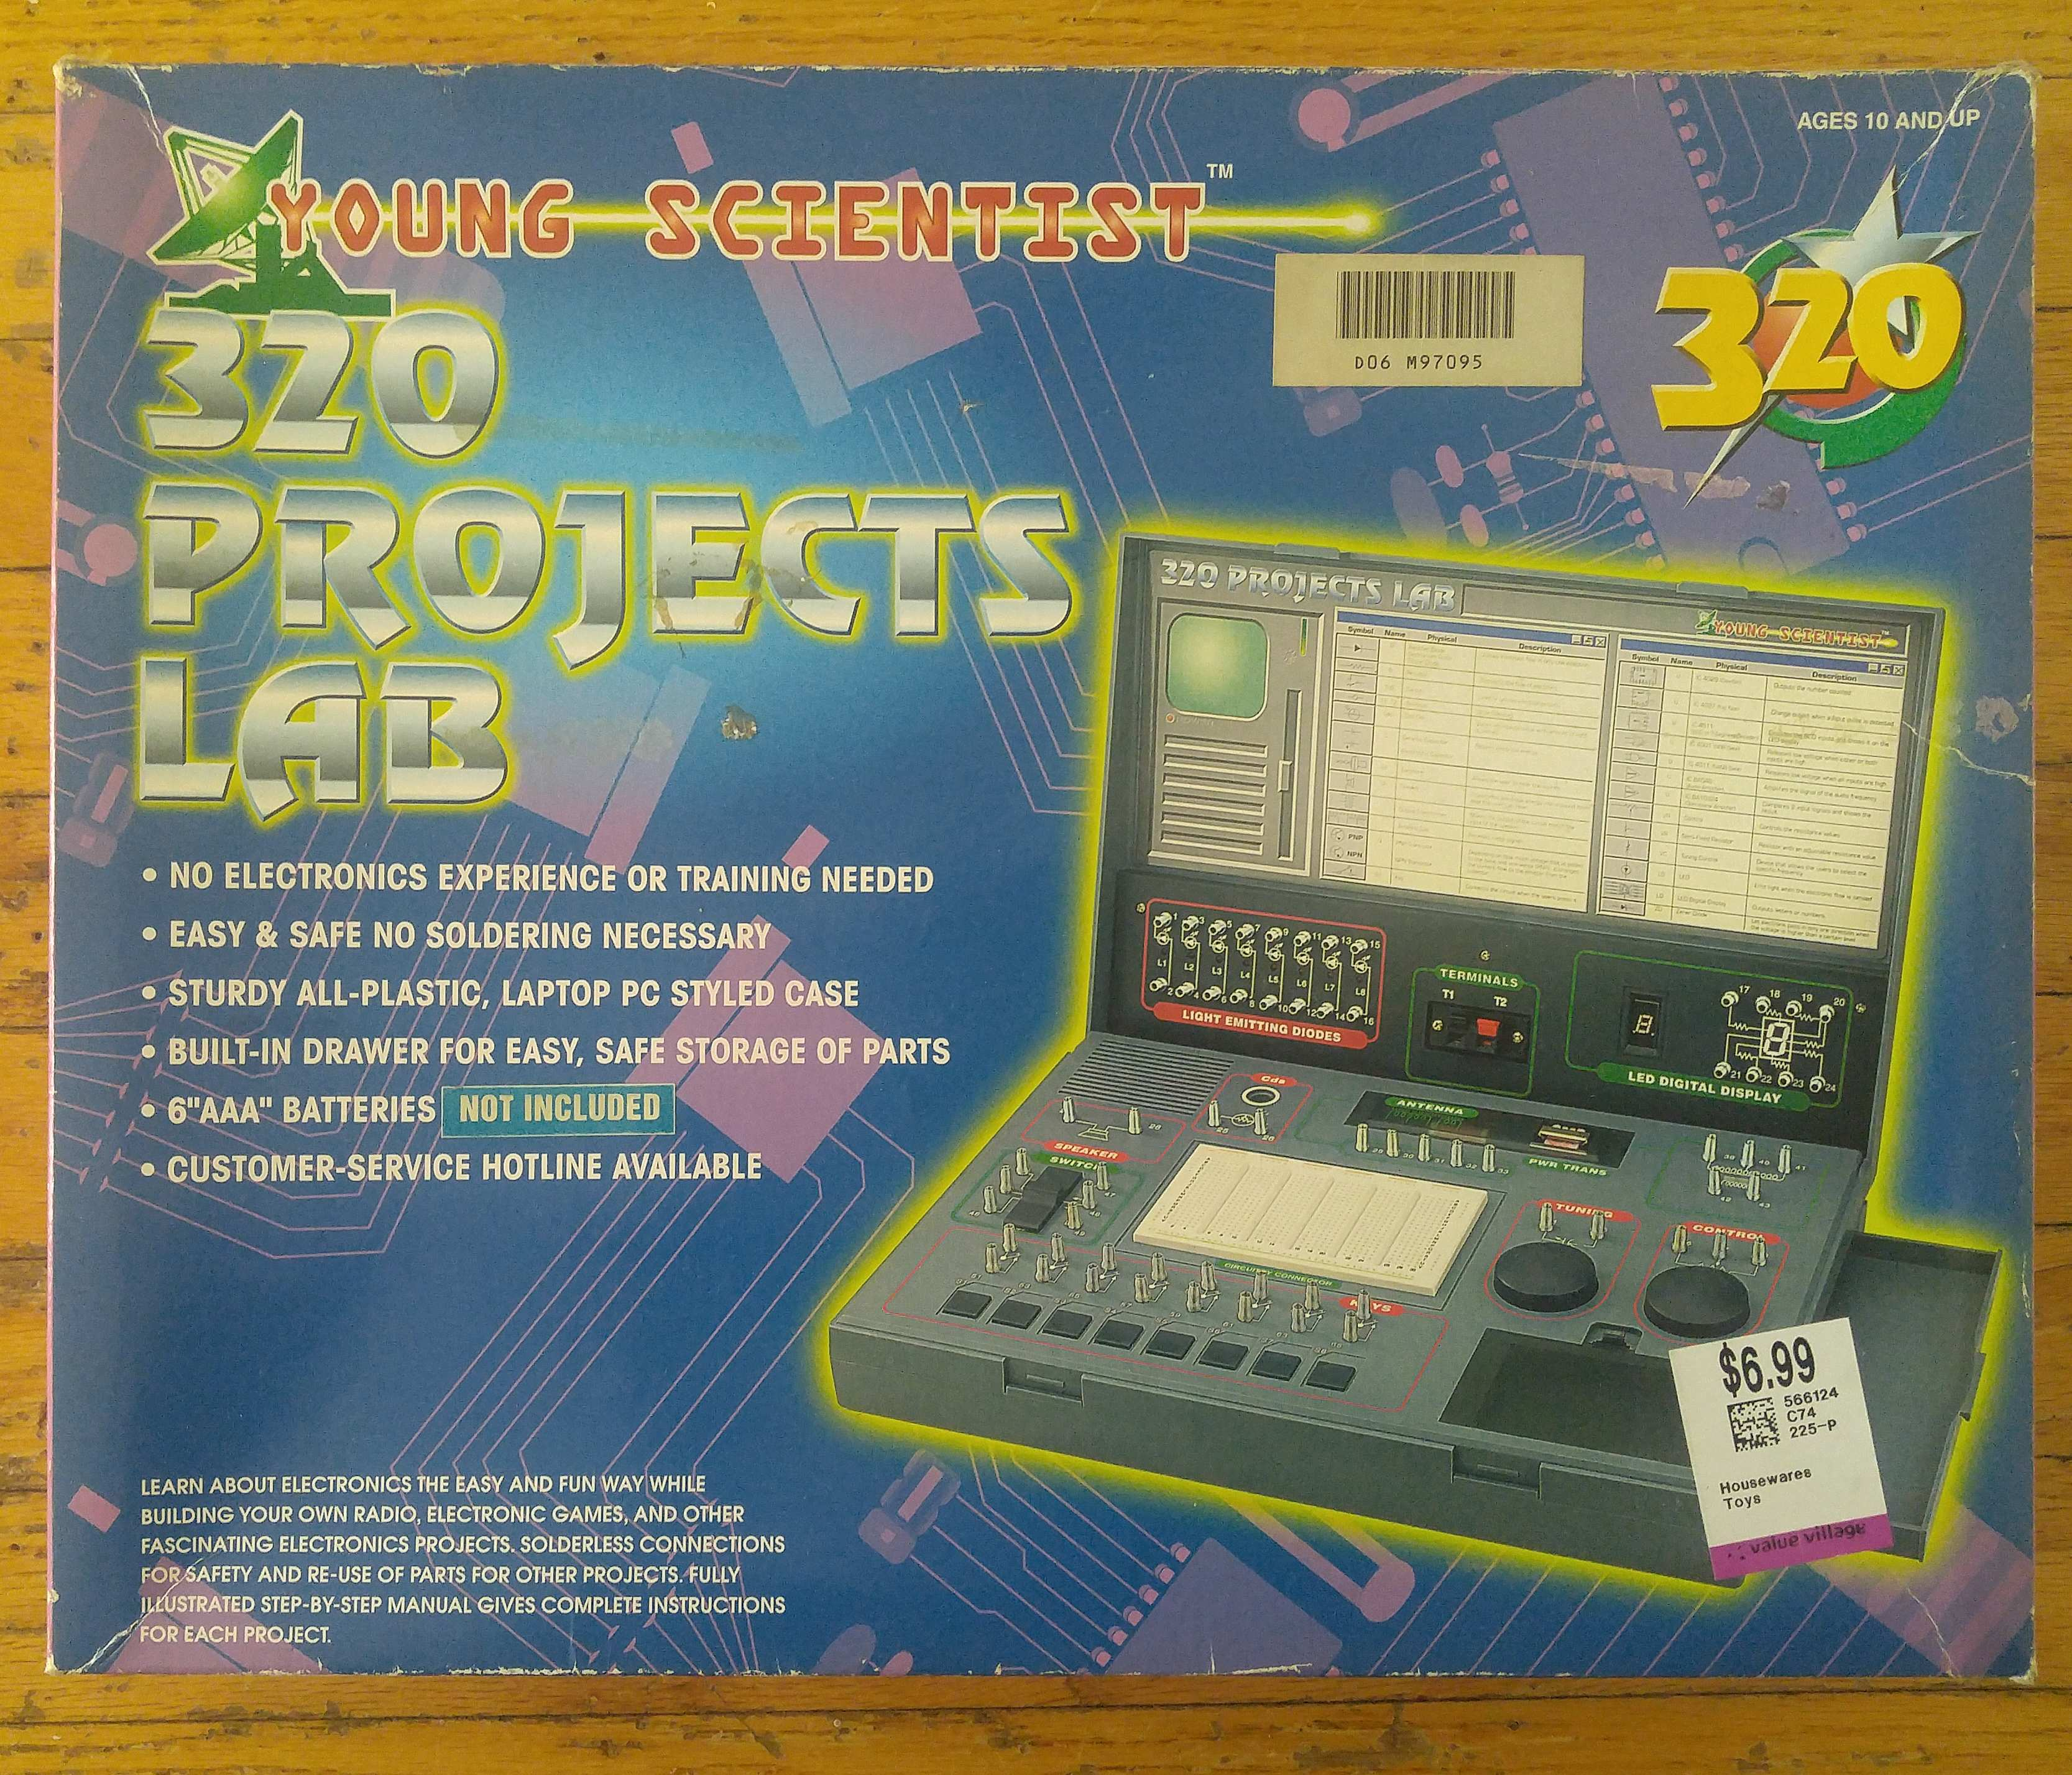 Young Scientist 320 Project Lab Sam Vs Sound Electronics Circuits Projects Electronic Kits Hobby More This Past Week I Was Taking My Usual Trip Through Local Value Village Thrift Store When Came Upon Something Really Rather Cool That Wanted To Share